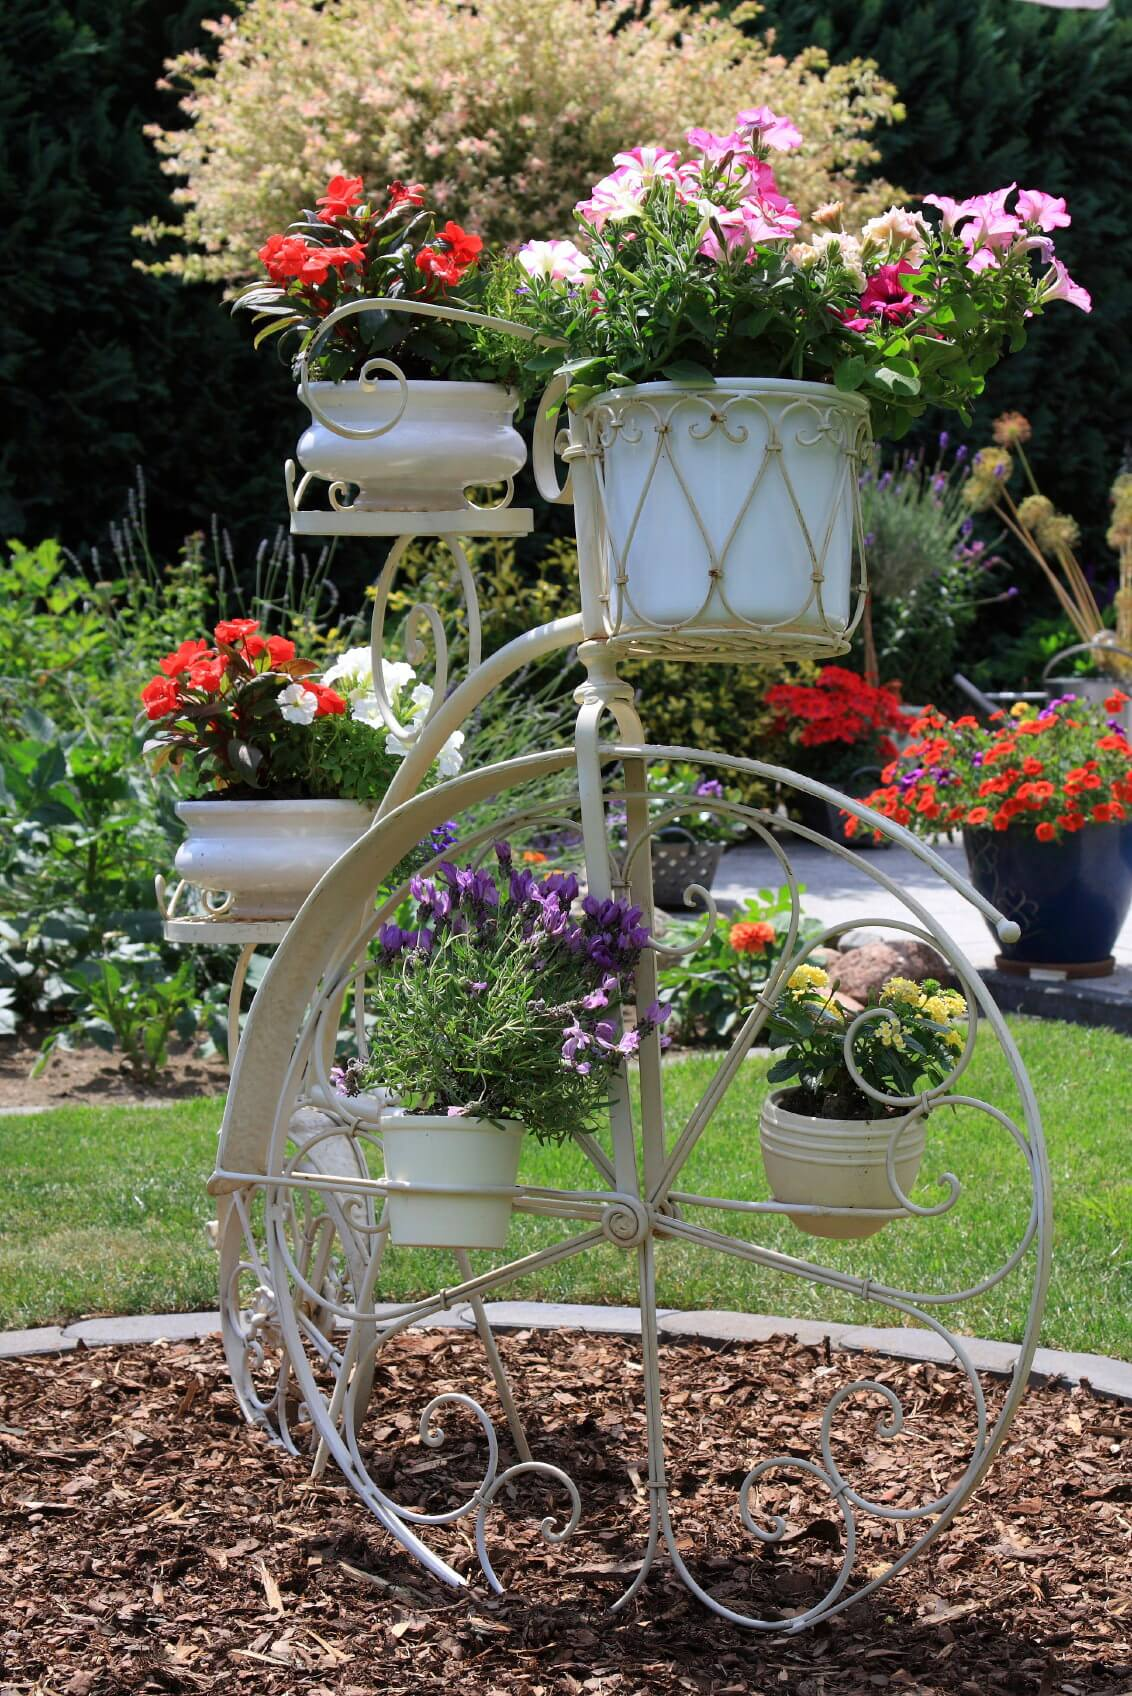 Here's a penny farthing bicycle flower planter.